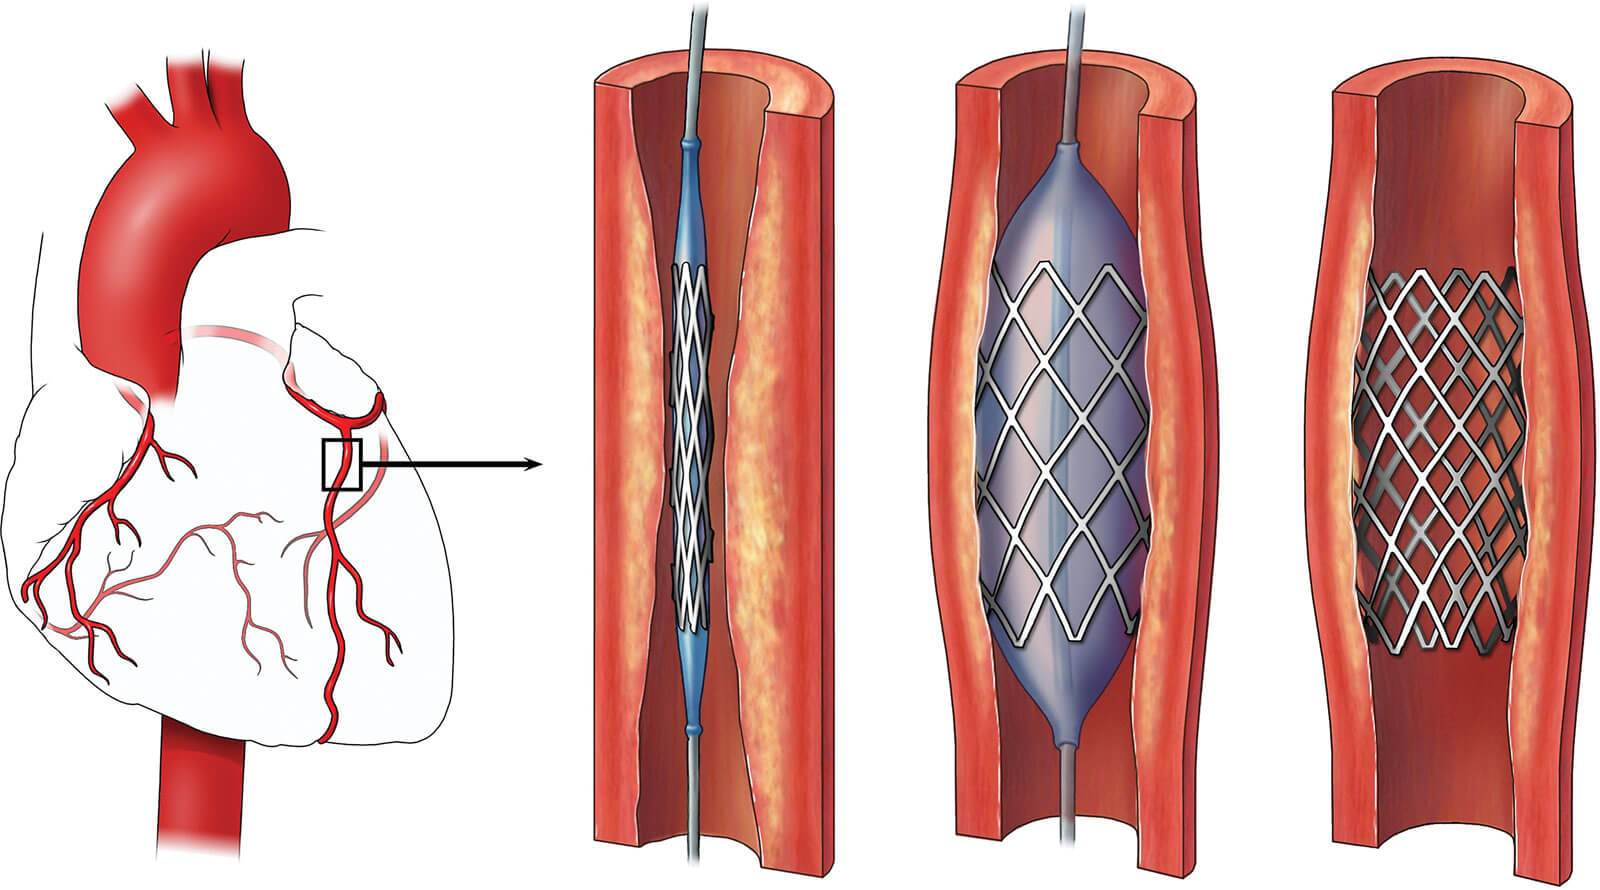 Global Intracranial Stents Market In-Depth Profiling With Key Players and Recent Developments, Forecast To 2026